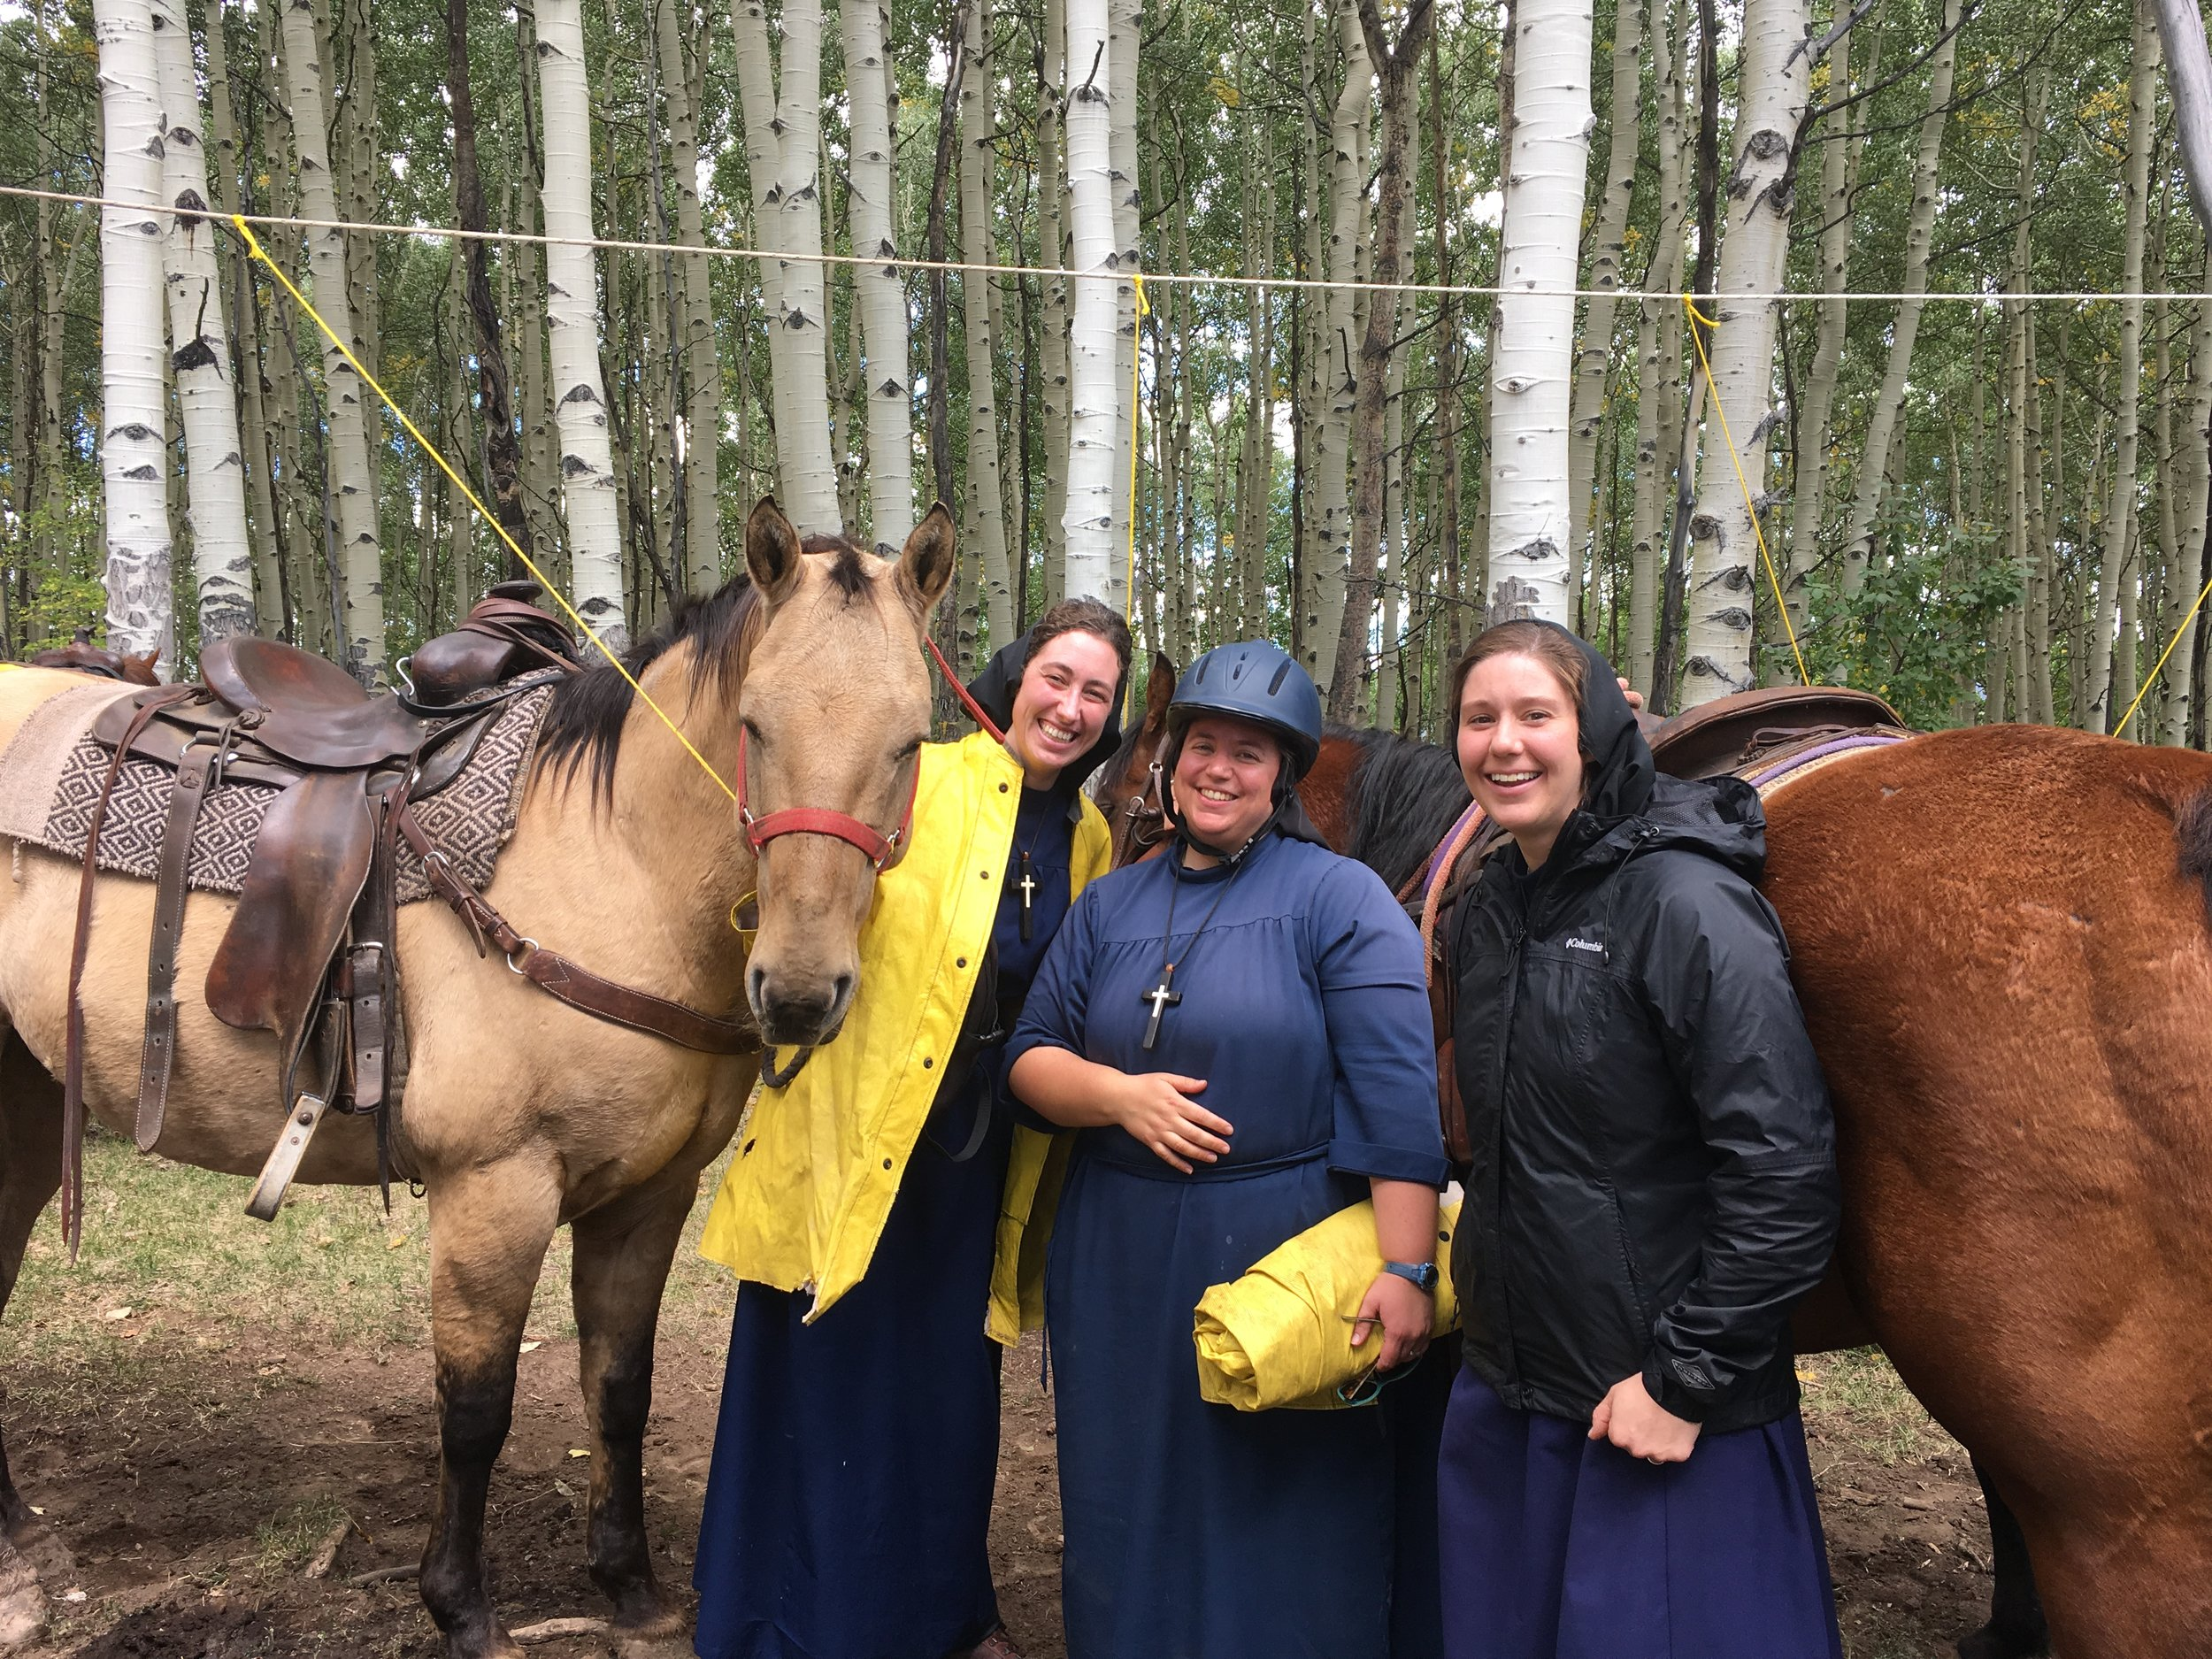 sisters with horses.JPG